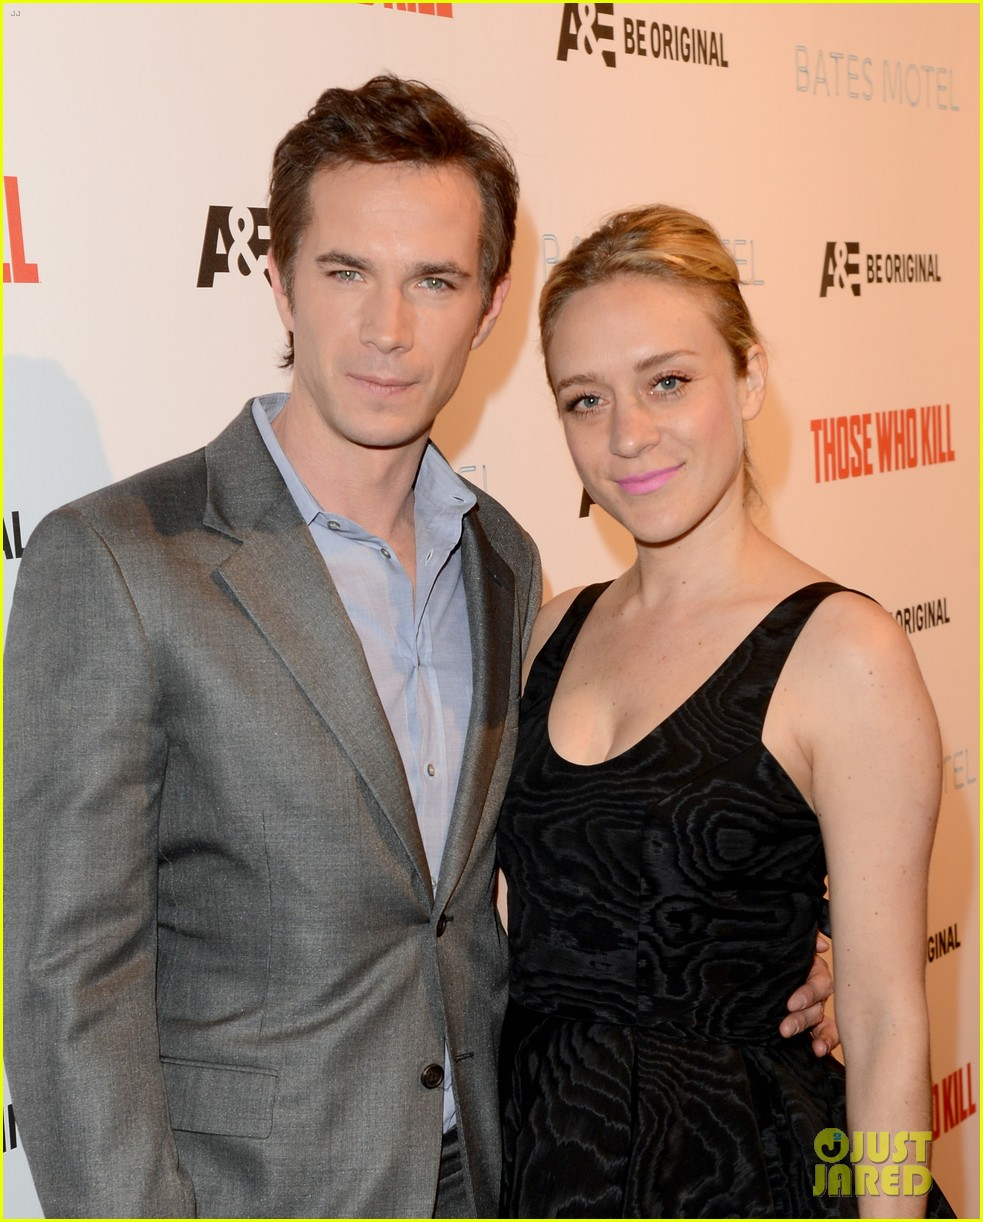 chloe sevigny james darcy those who kill premiere party 083061416